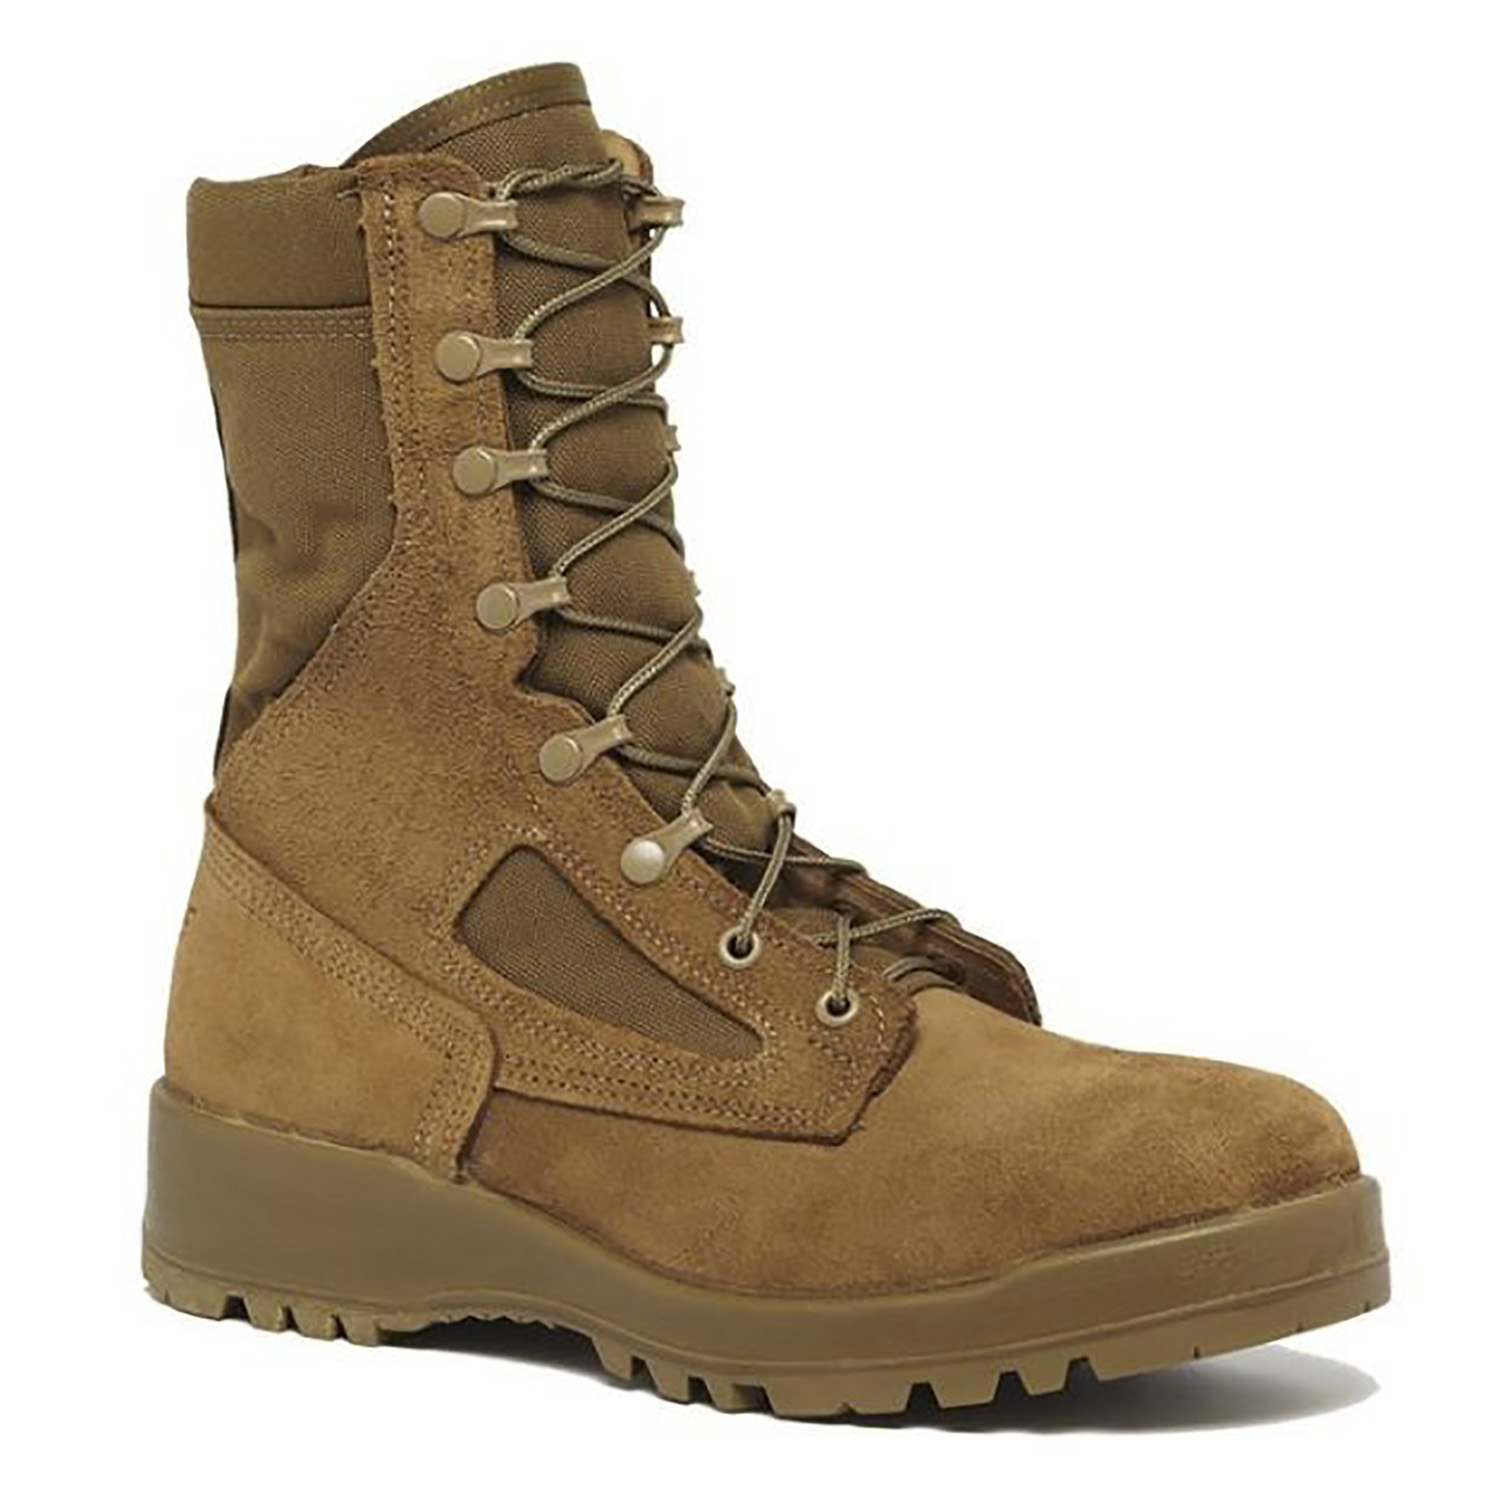 Hot Weather Steel Toe Combat Boots